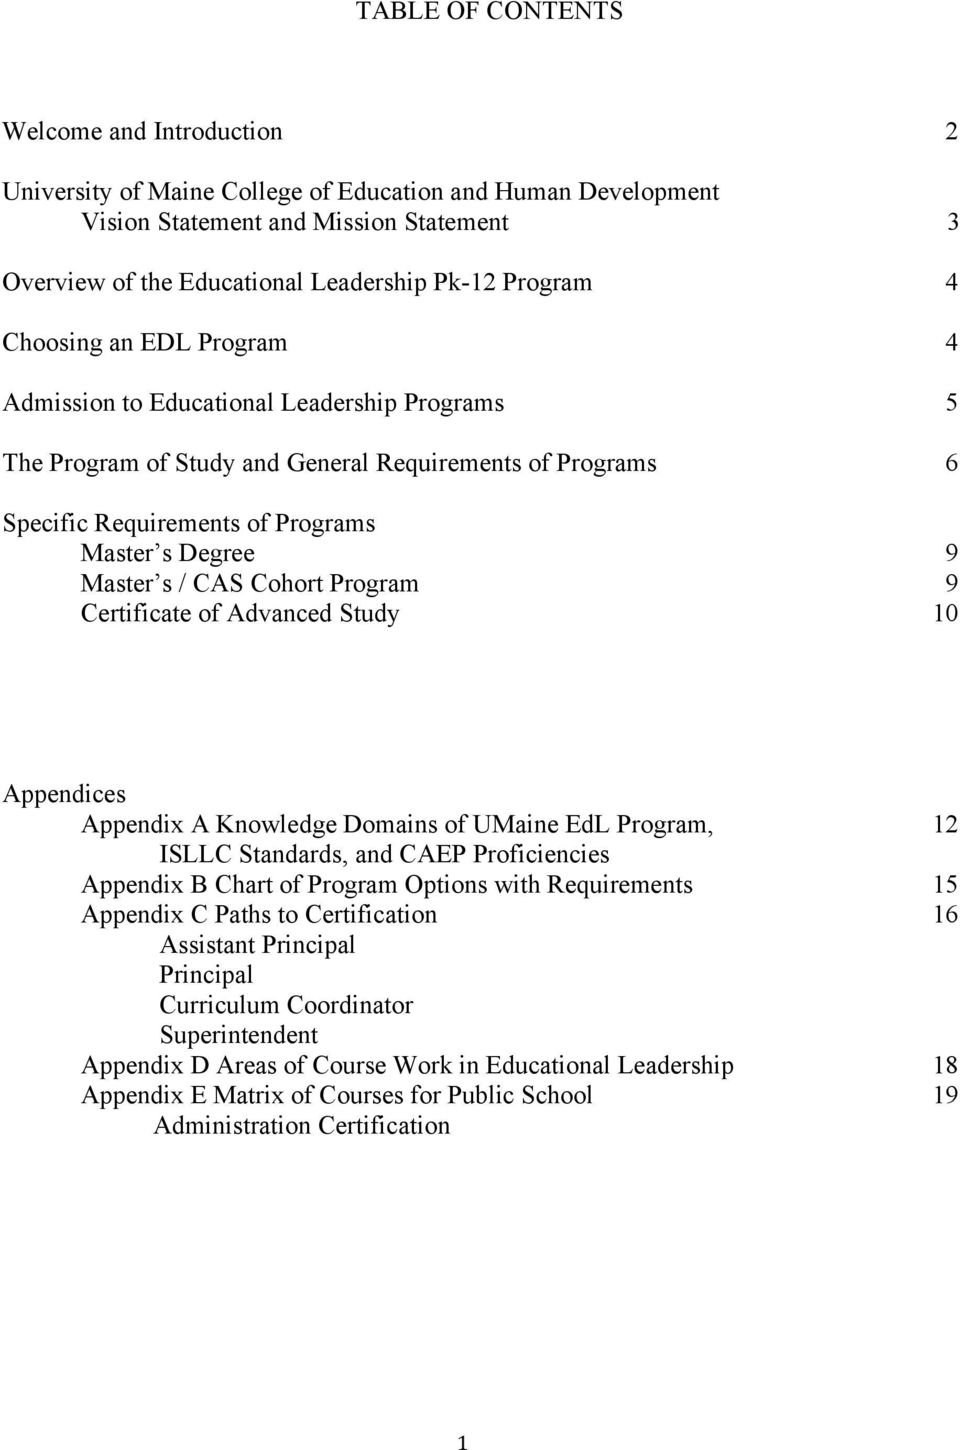 Master s / CAS Cohort Program 9 Certificate of Advanced Study 10 Appendices Appendix A Knowledge Domains of UMaine EdL Program, 12 ISLLC Standards, and CAEP Proficiencies Appendix B Chart of Program